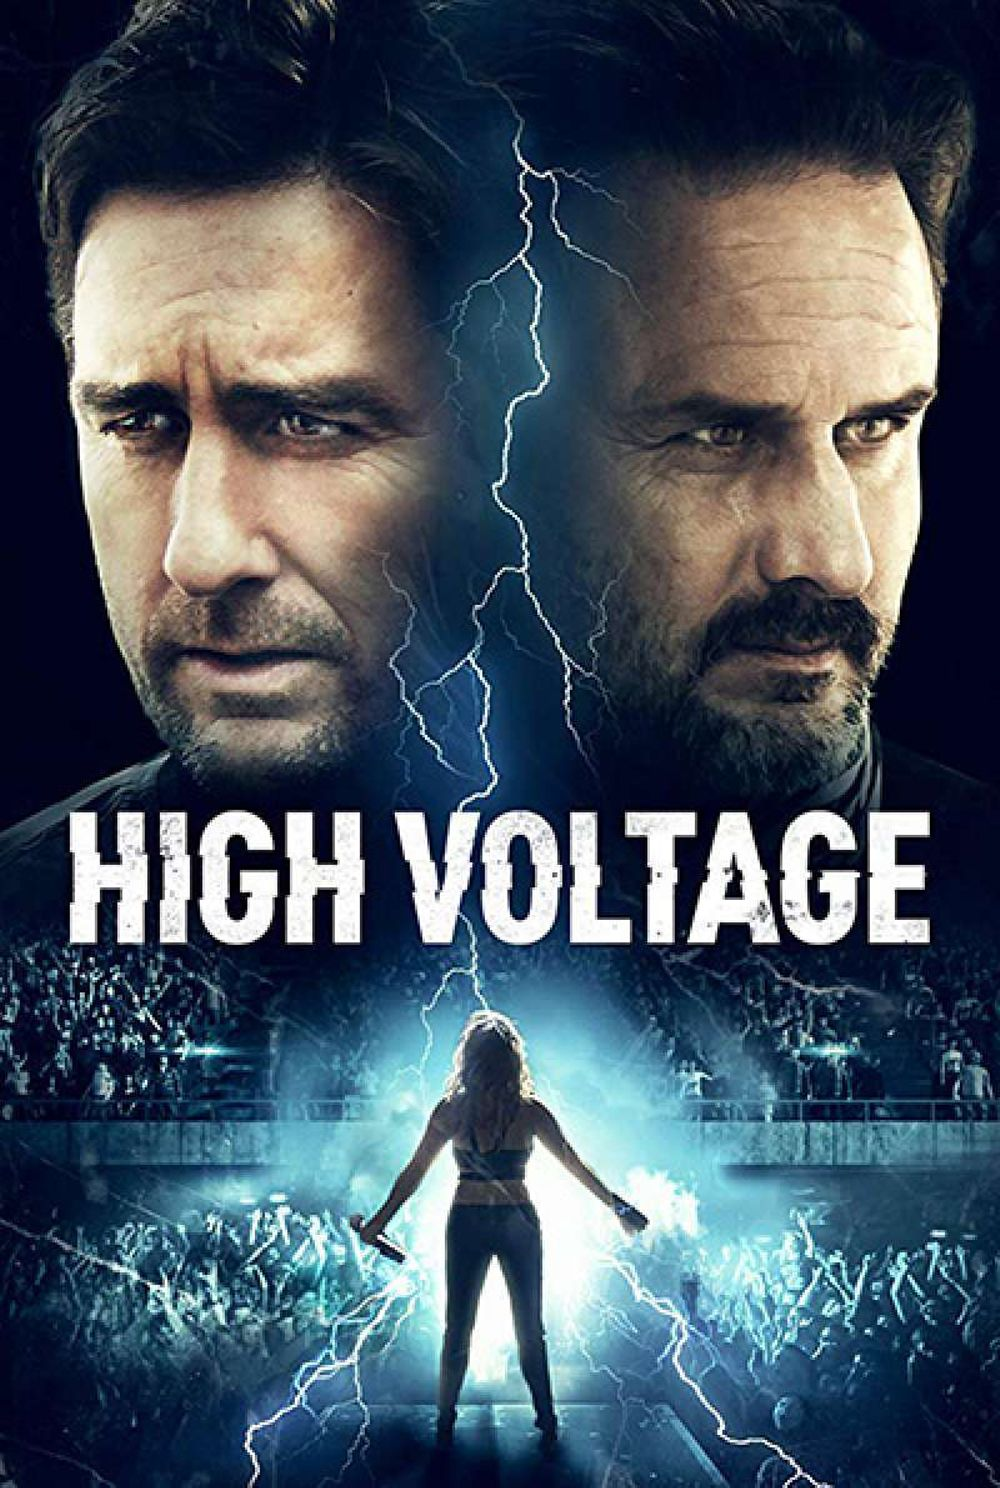 High Voltage Movie Review